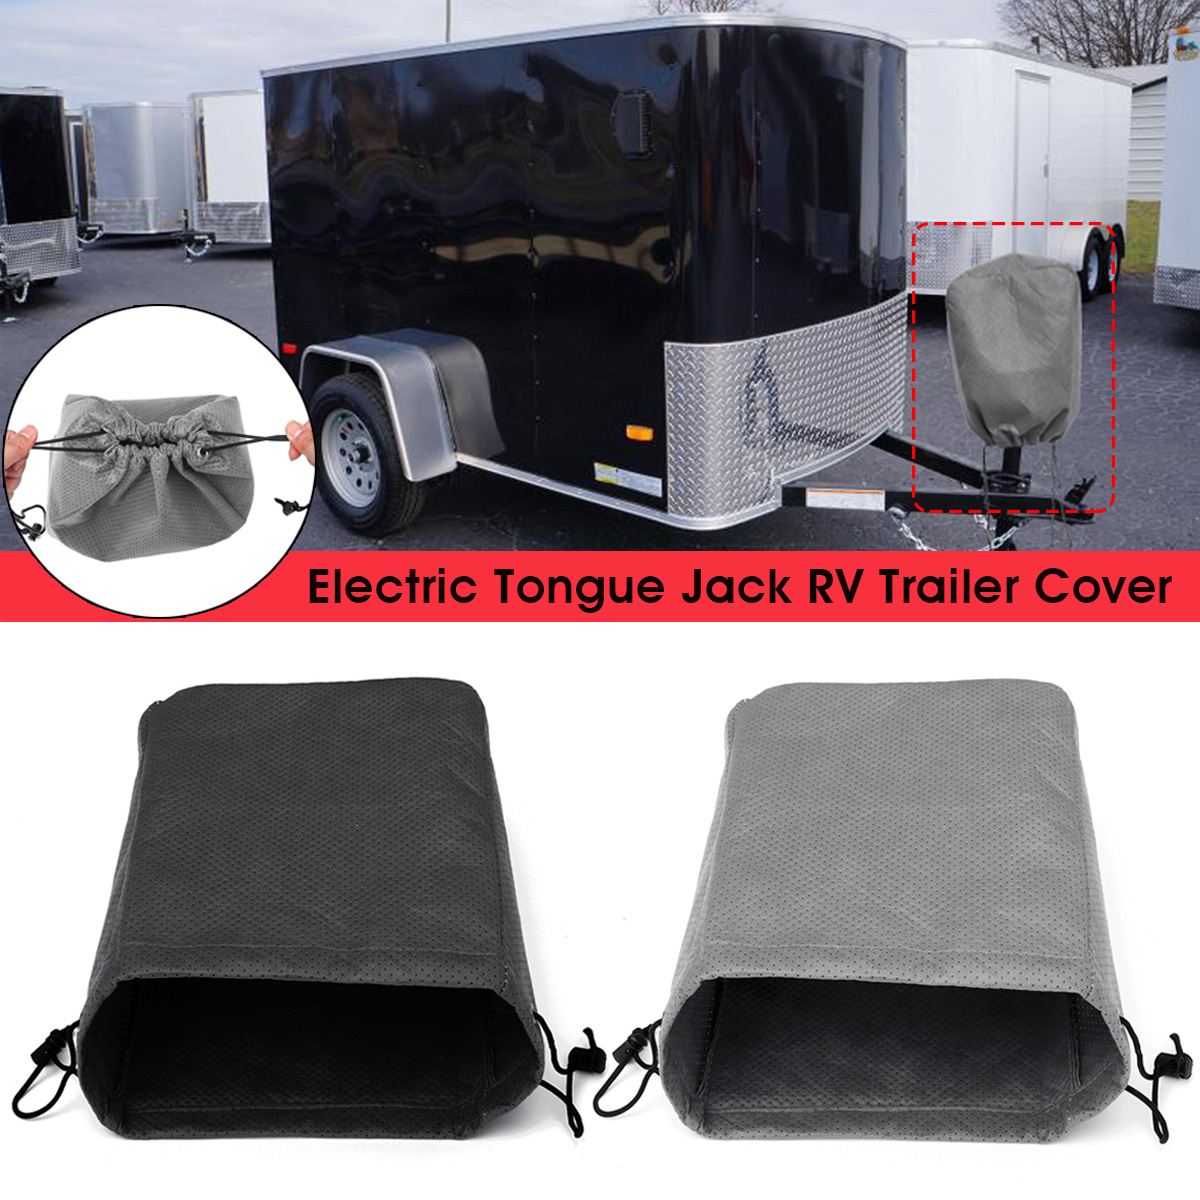 Universal Electric Tongue Jack Cover Protector For RV Travel Trailer Camper